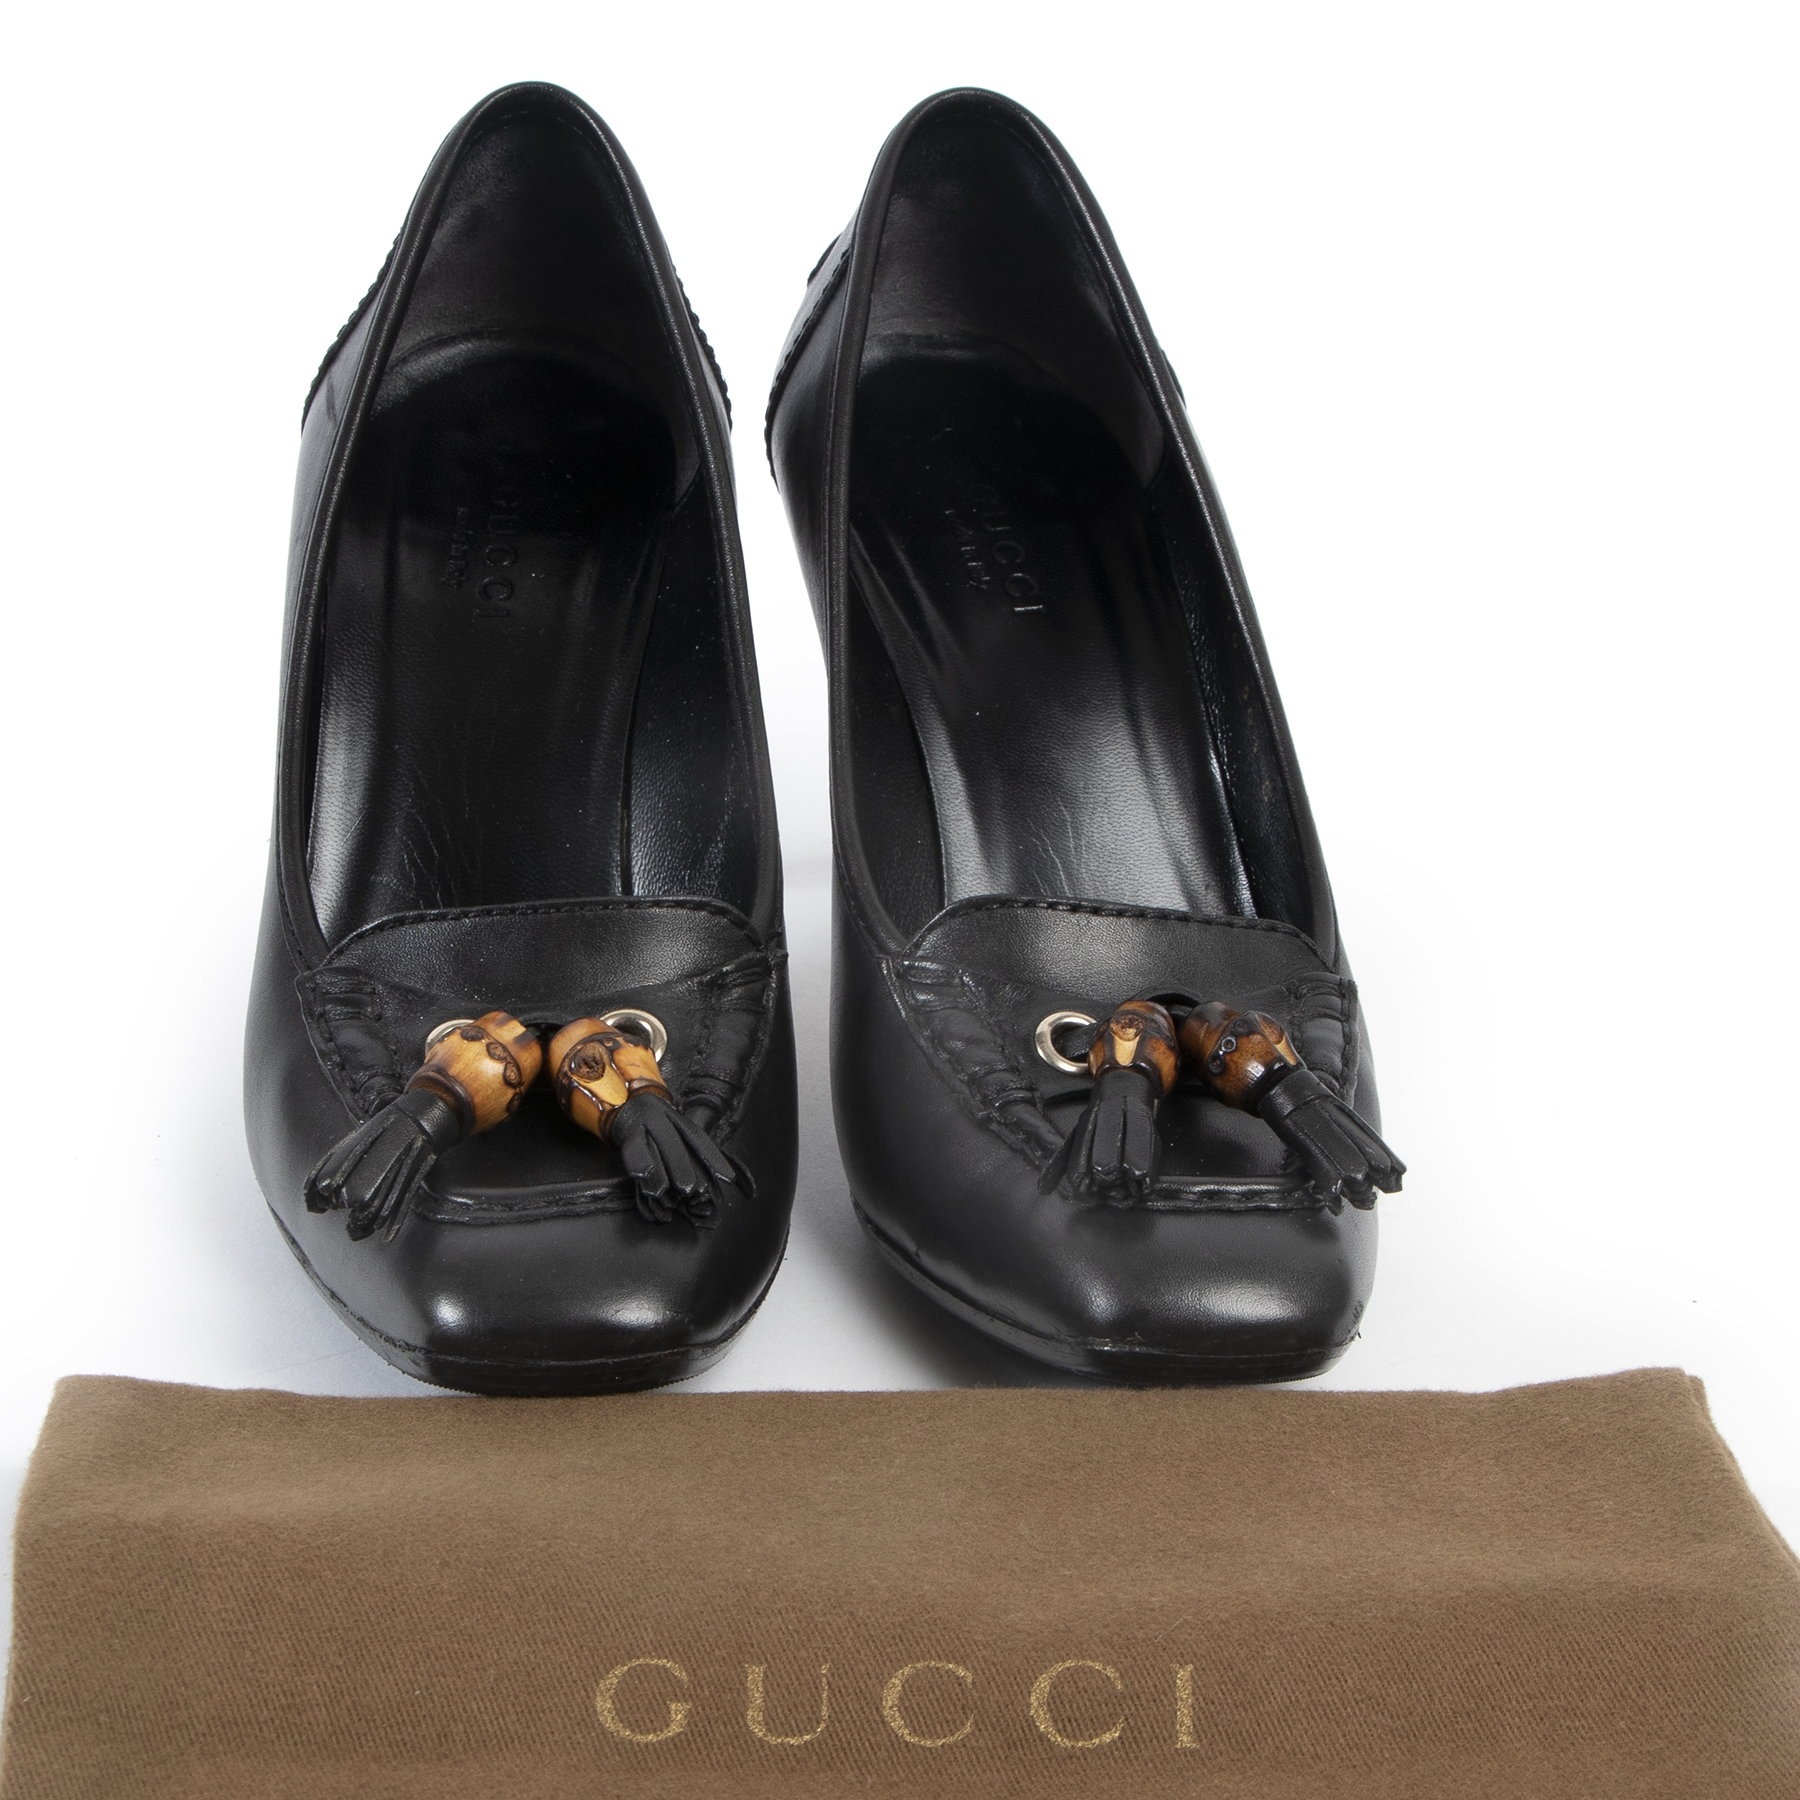 Authentic secondhand Gucci Black Leather Bamboo Heels - Size 36,5 designer shoes fashion luxury vintage webshop safe secure online shopping